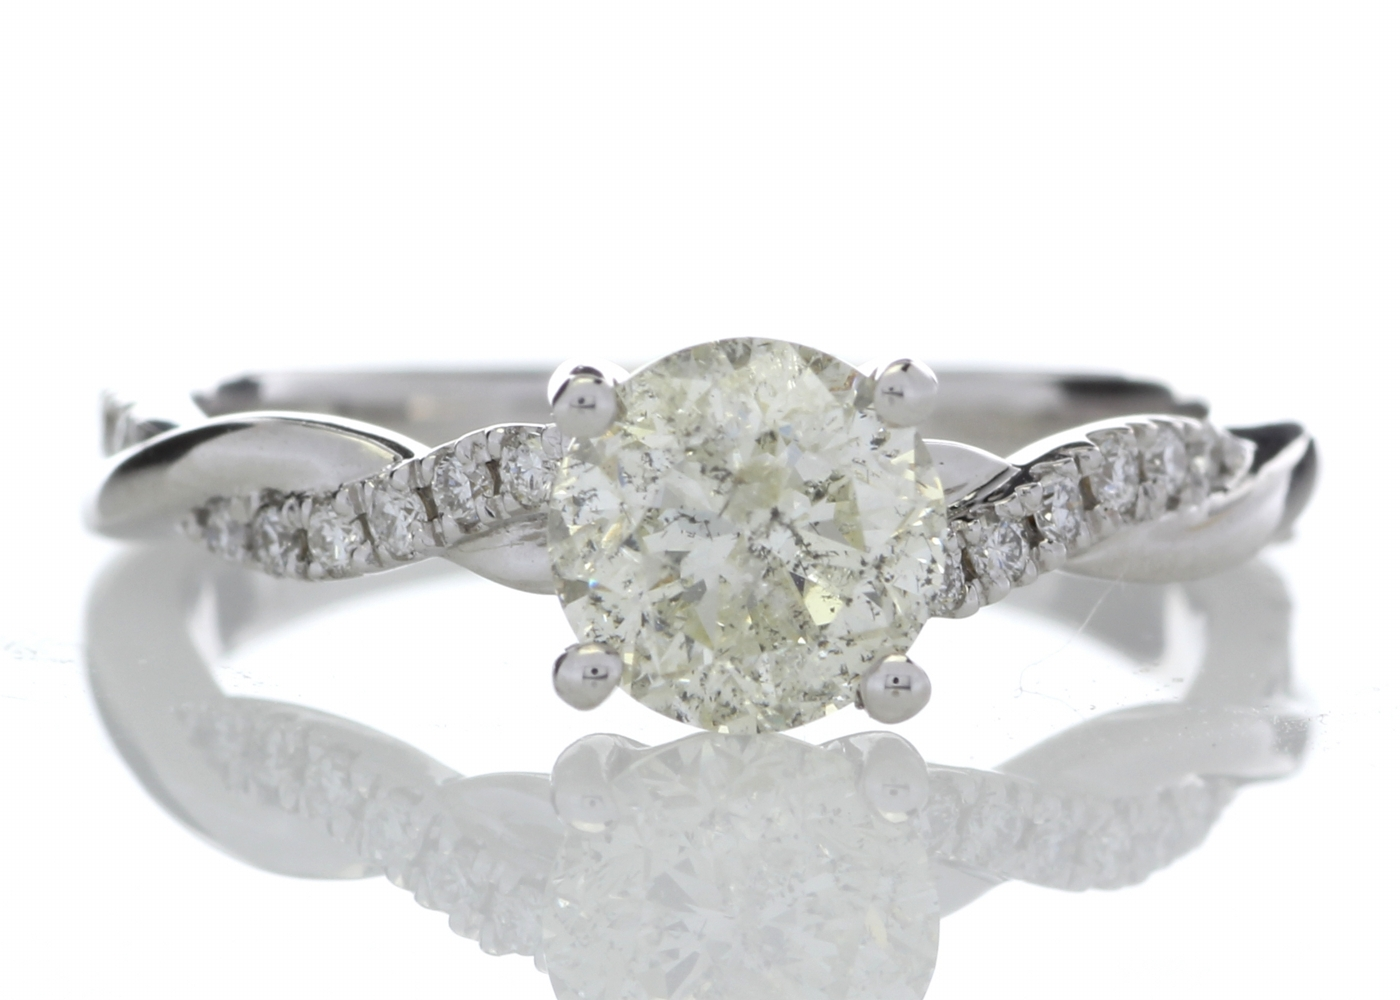 18k White Gold Diamond Ring With Waved Stone Set Shoulders 1.22 Carats